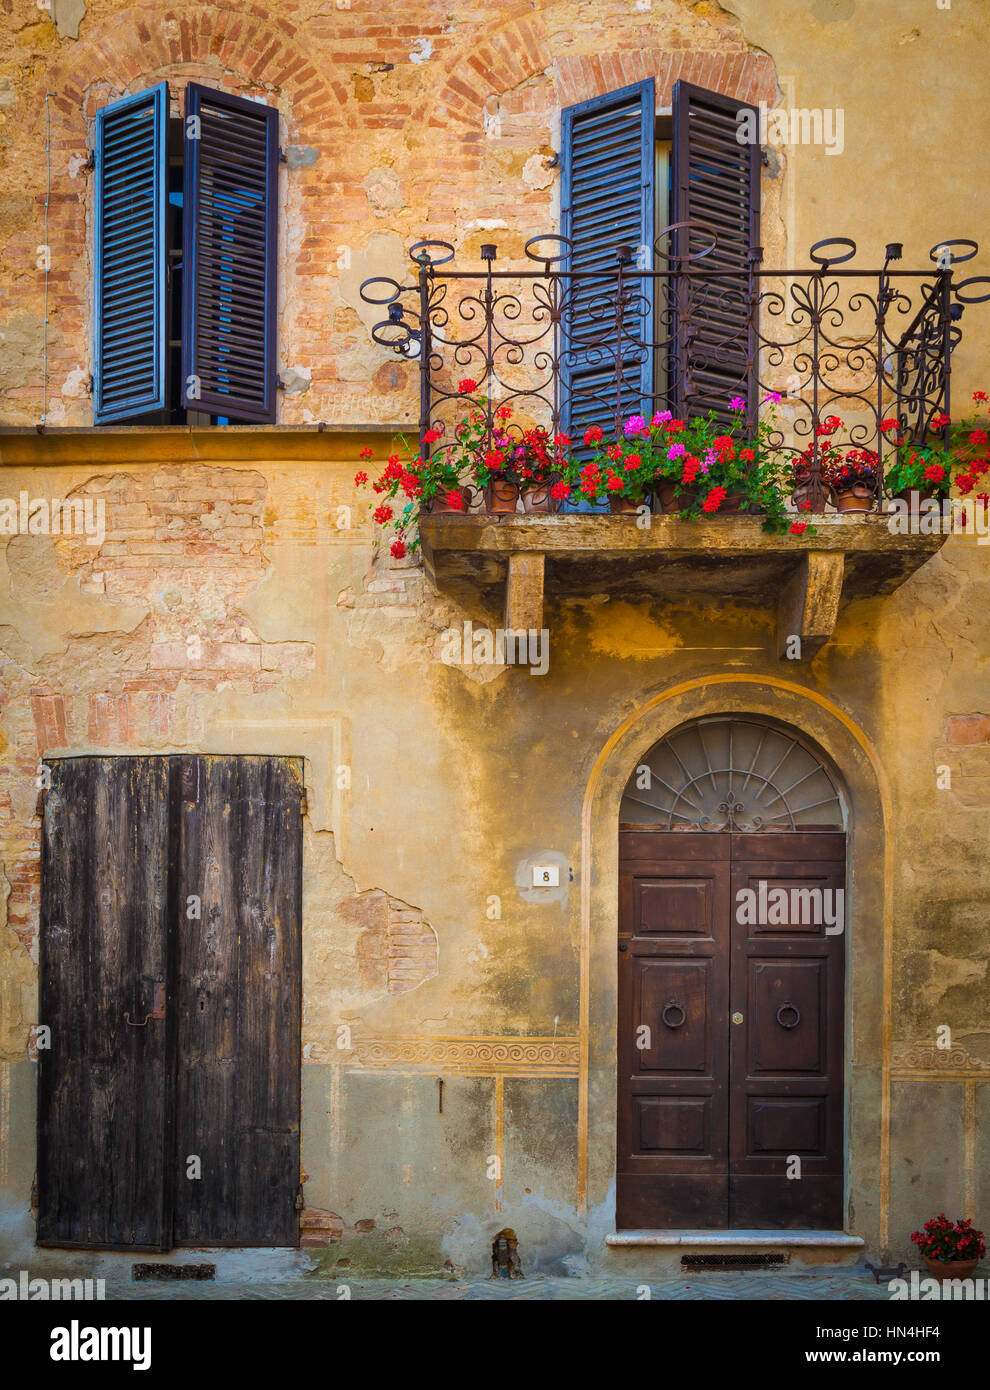 House facade in the Tuscan hill town of Pienza - Stock Image